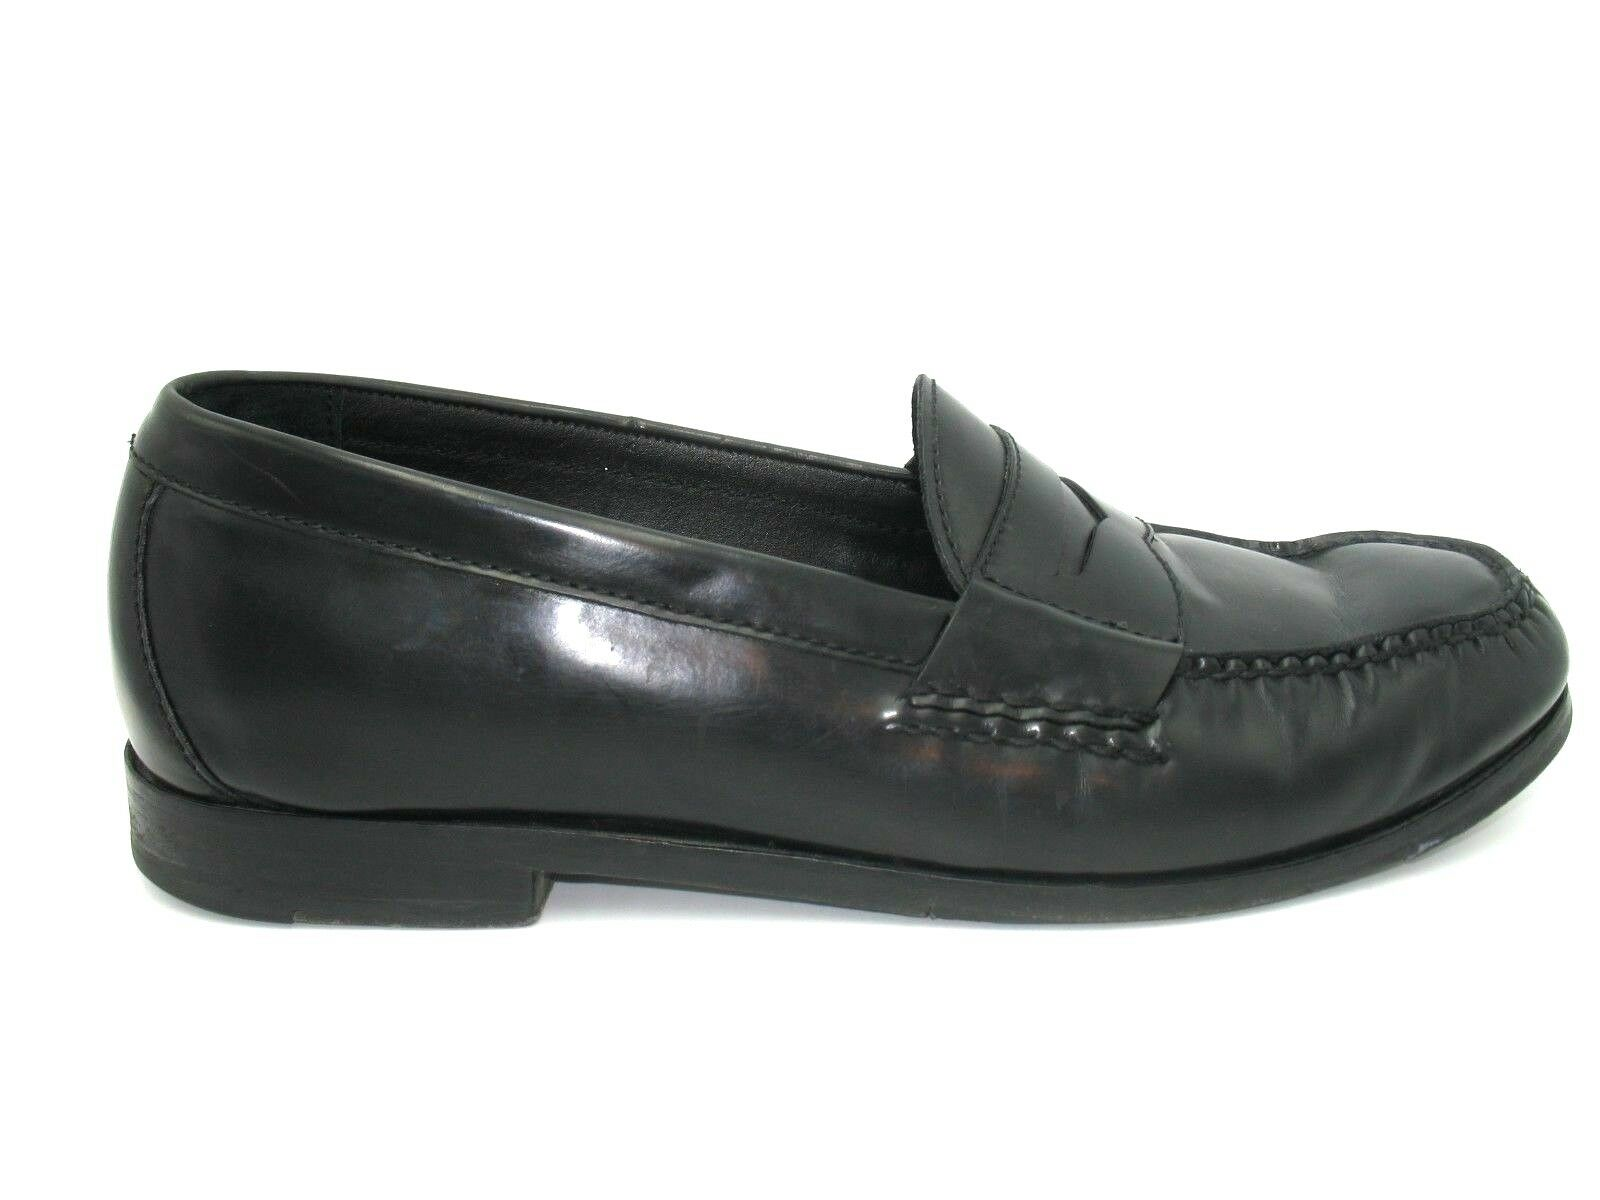 Cole Haan Grand Os Black Leather Slip On Penny Loafer shoes Mens 10.5M